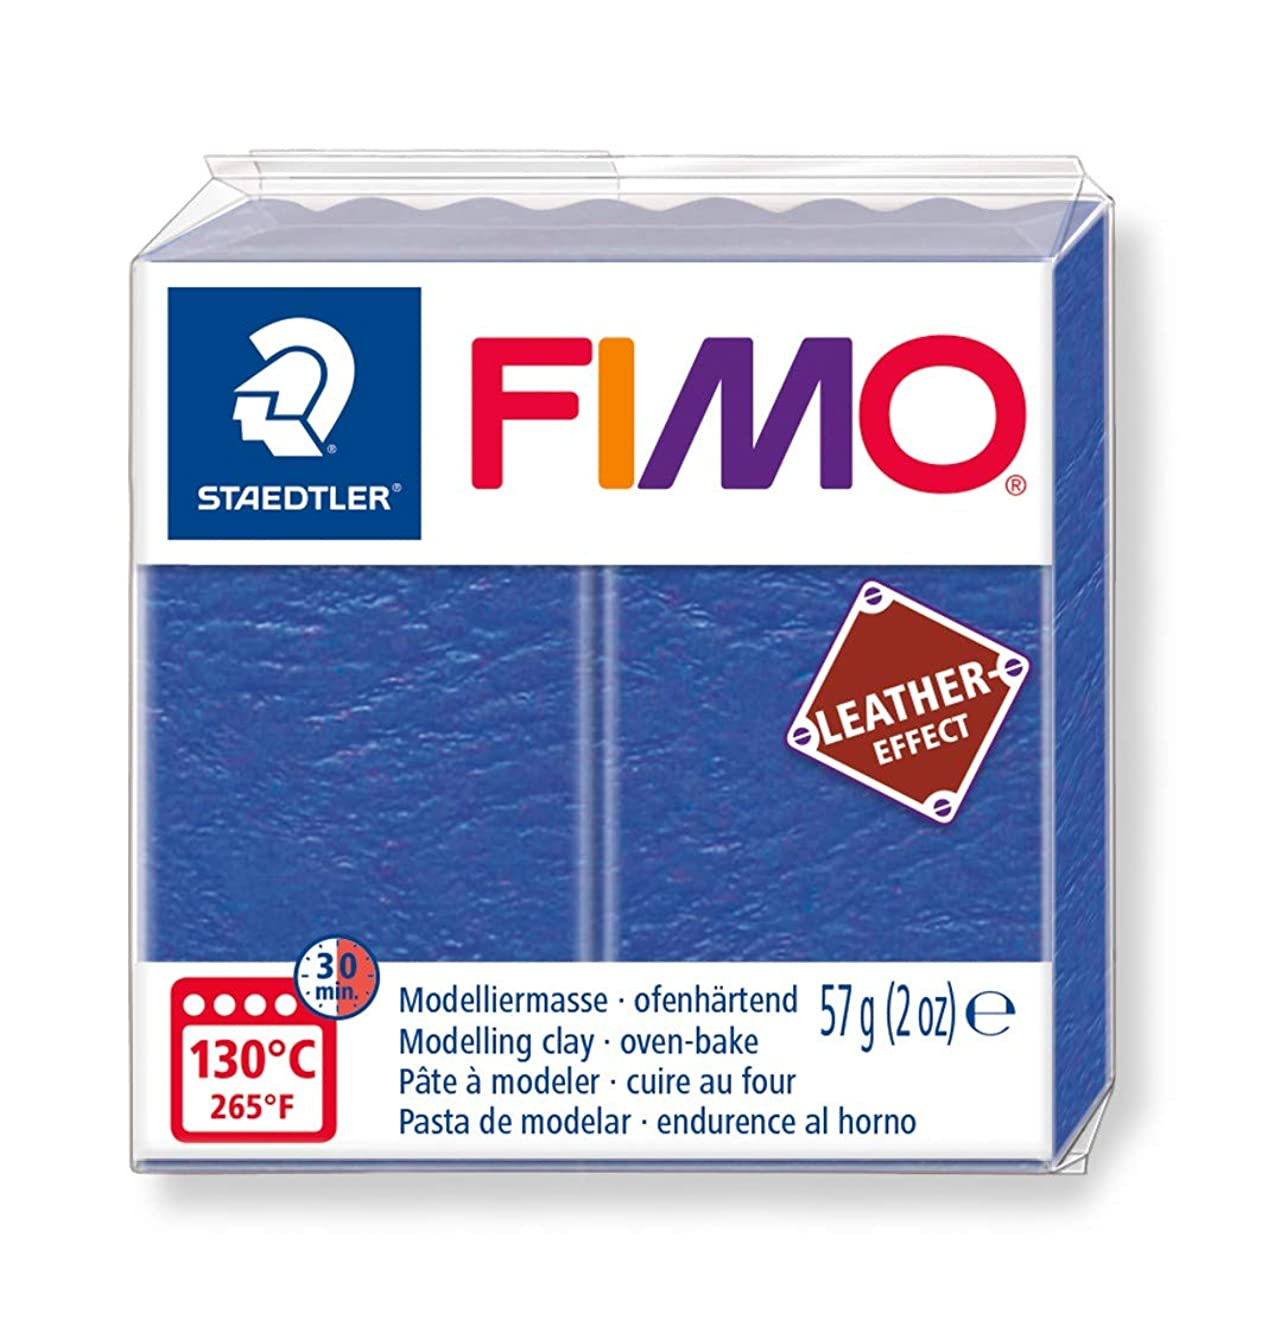 STAEDTLER ST FIMO Leather-Effect Oven-Hardening Modelling Clay for Creative Objects Leather Look Leather-Like Look and Feel Indigo Colour 8010-309